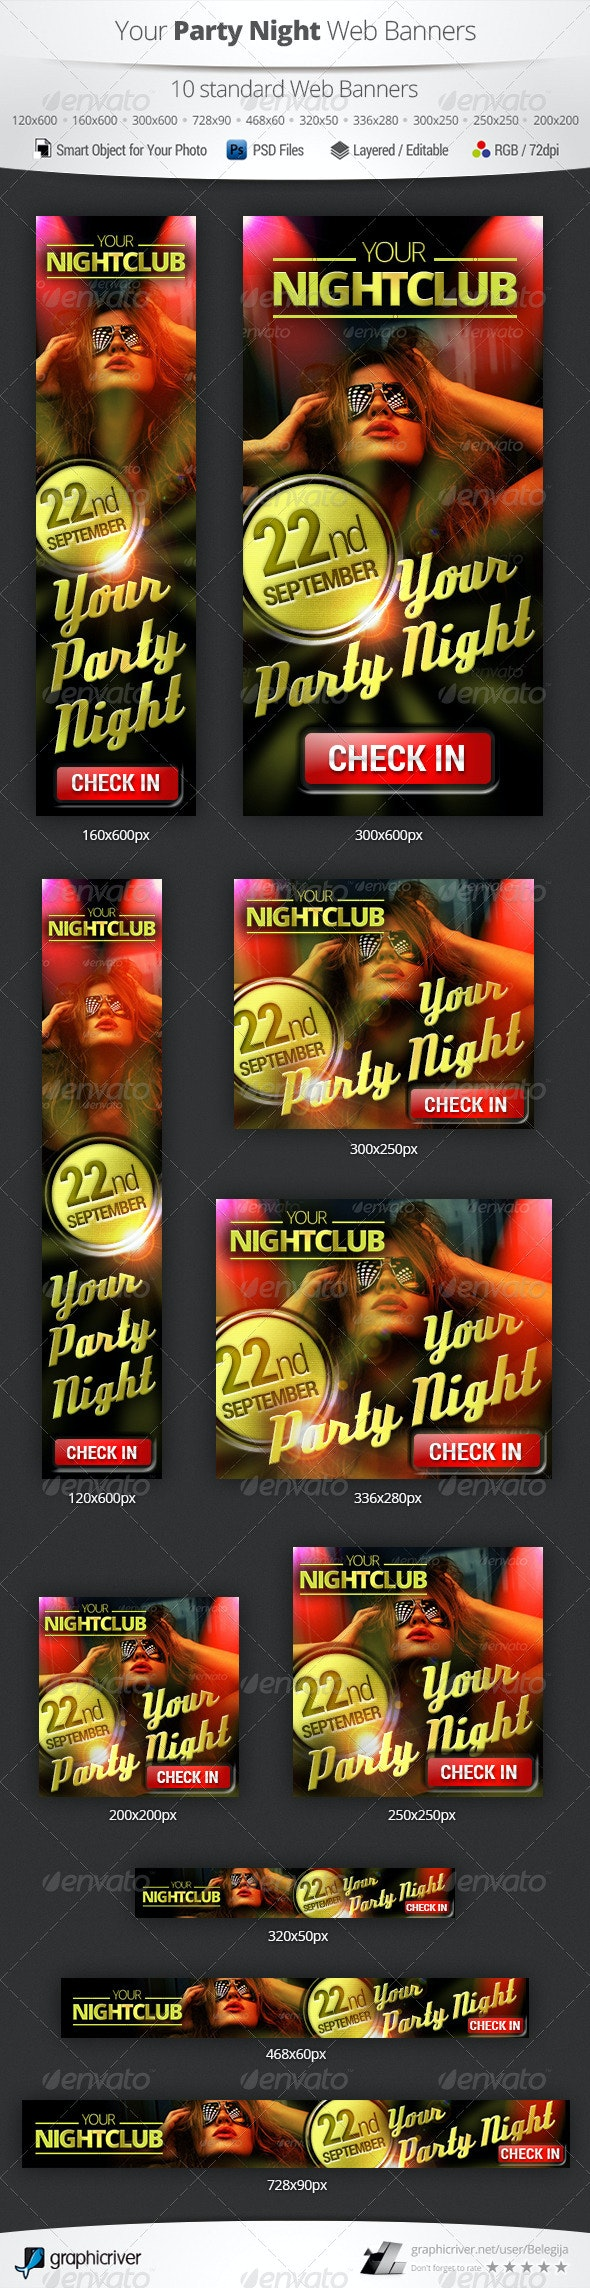 Party Night Web Banners - Banners & Ads Web Elements